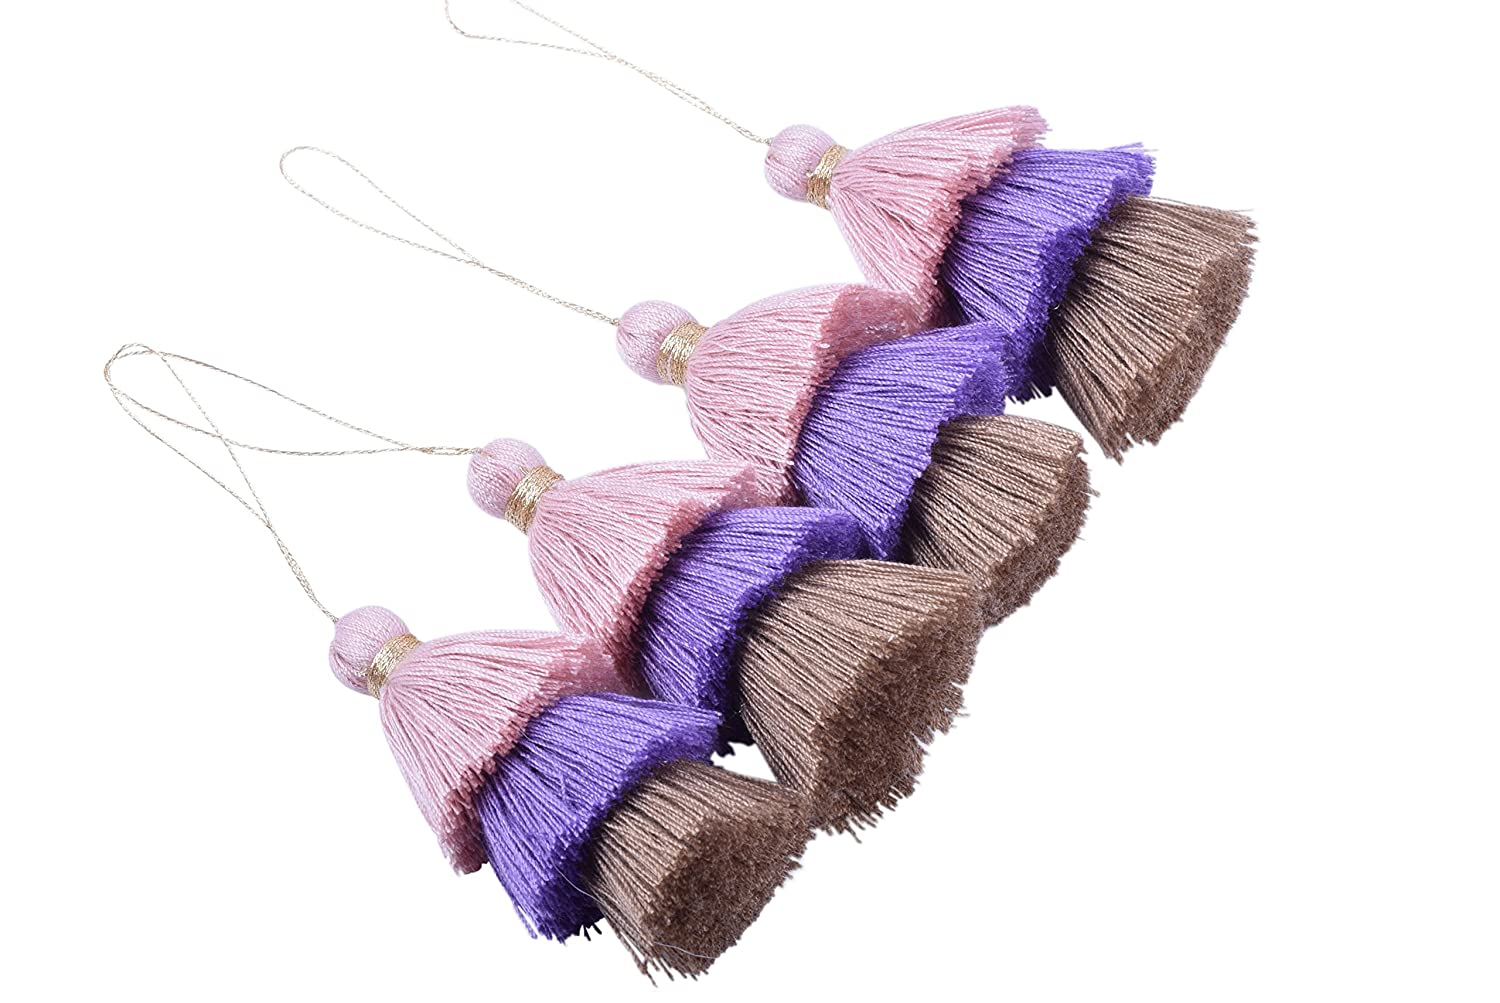 KONMAY 4pcs Tri-Layered Tassels with Hanging Loop for Jewelry Making, Clothing KMTS004SP